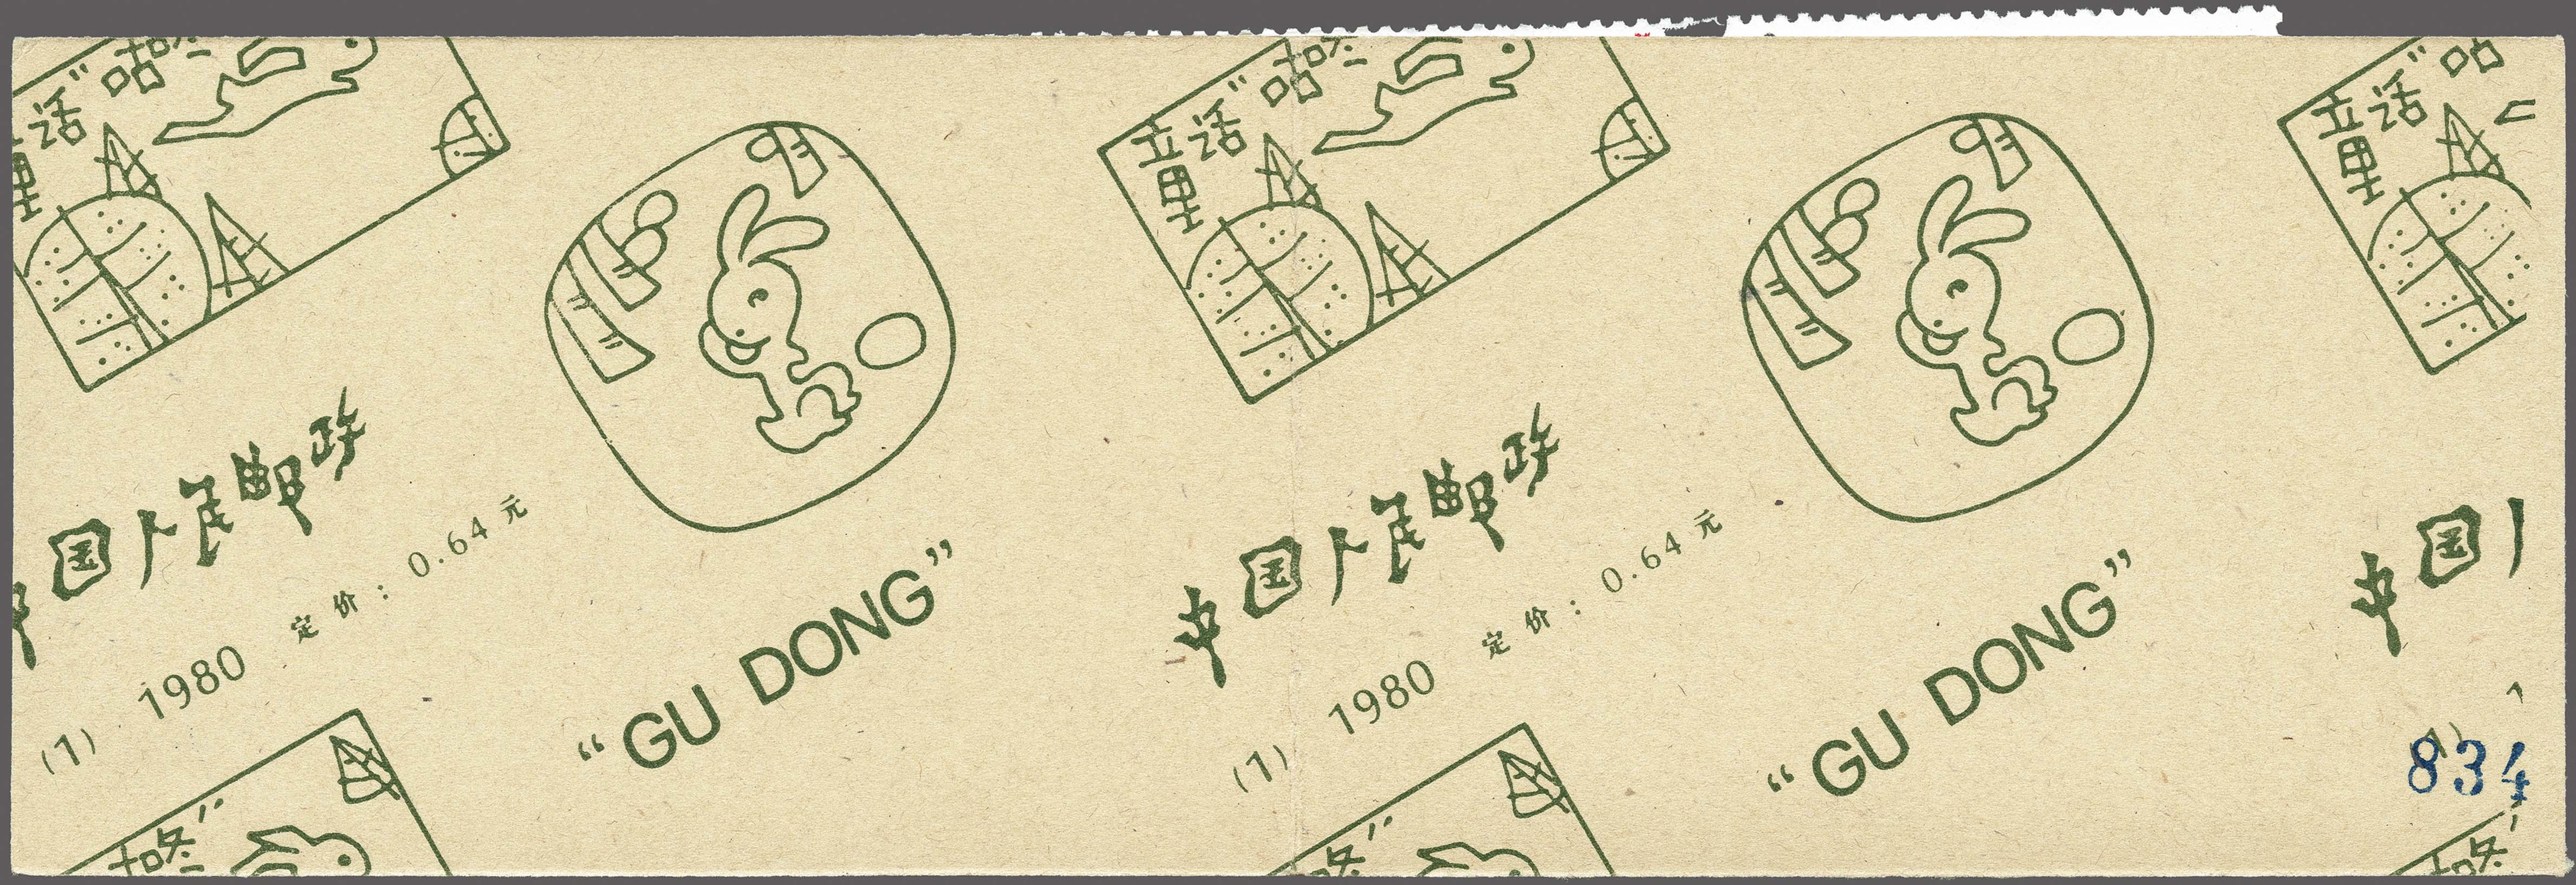 Lot 46 - Outside Europa China -  Corinphila Veilingen Auction 250-253 - Day 1 - Foreign countries